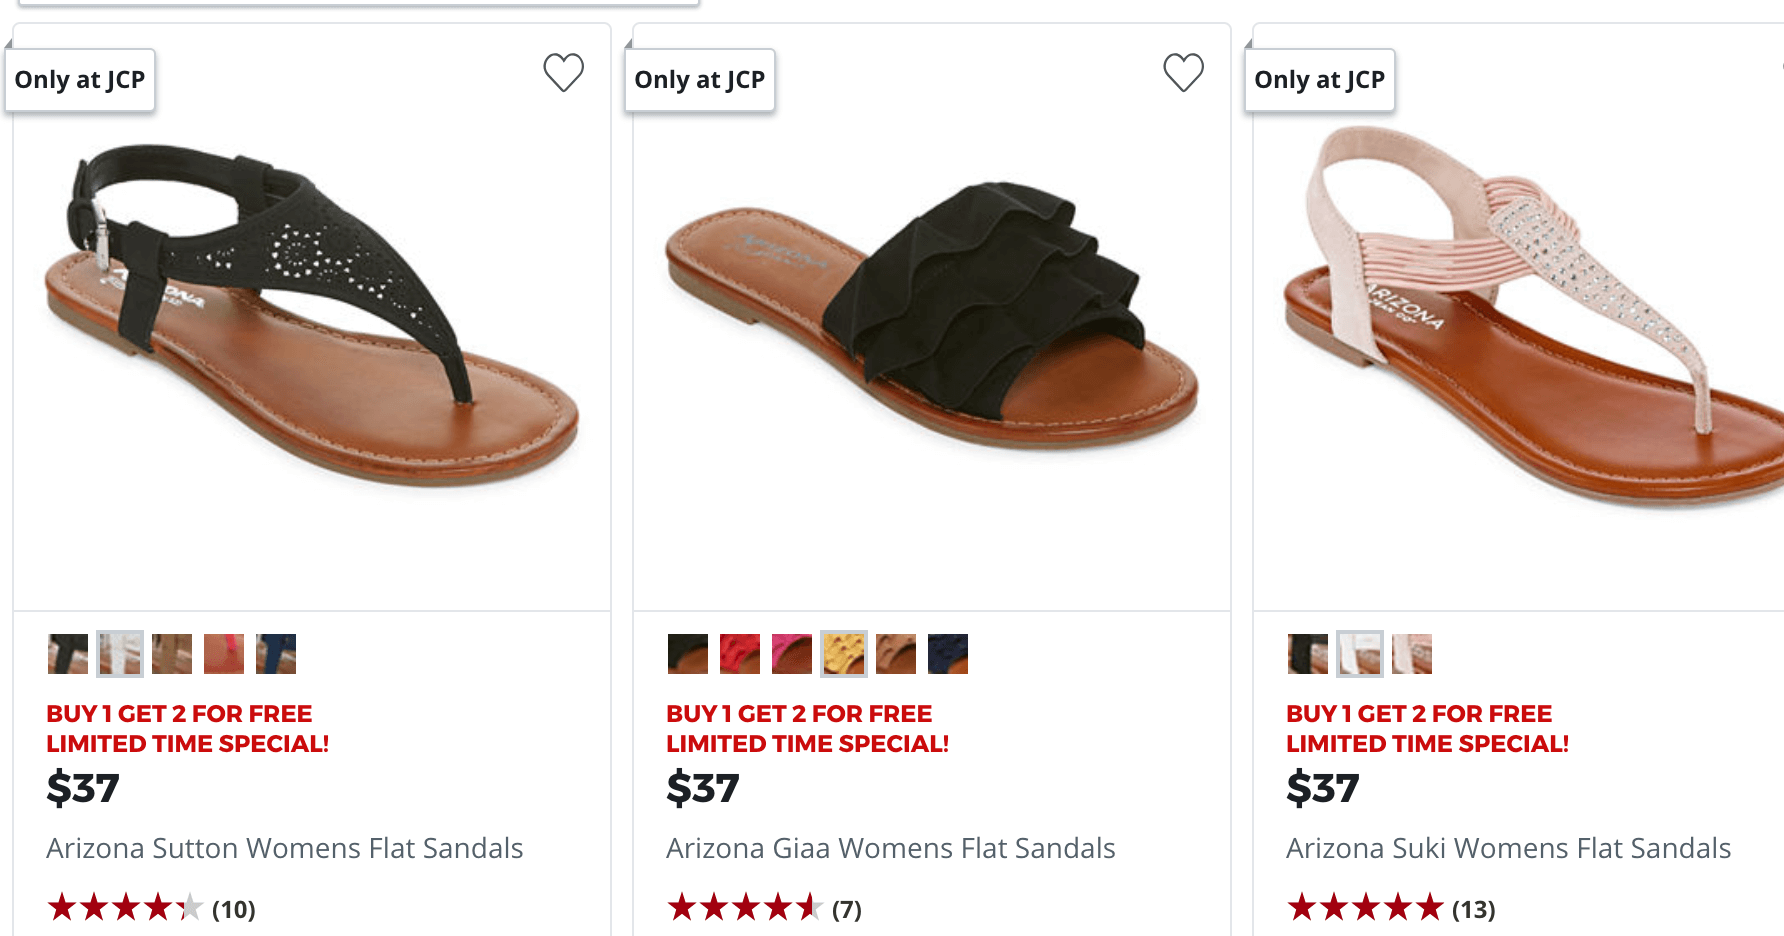 381775c20 JCPenney Buy 1 Pair of Women s Sandals   Flip Flops Get 2 FREELiving ...